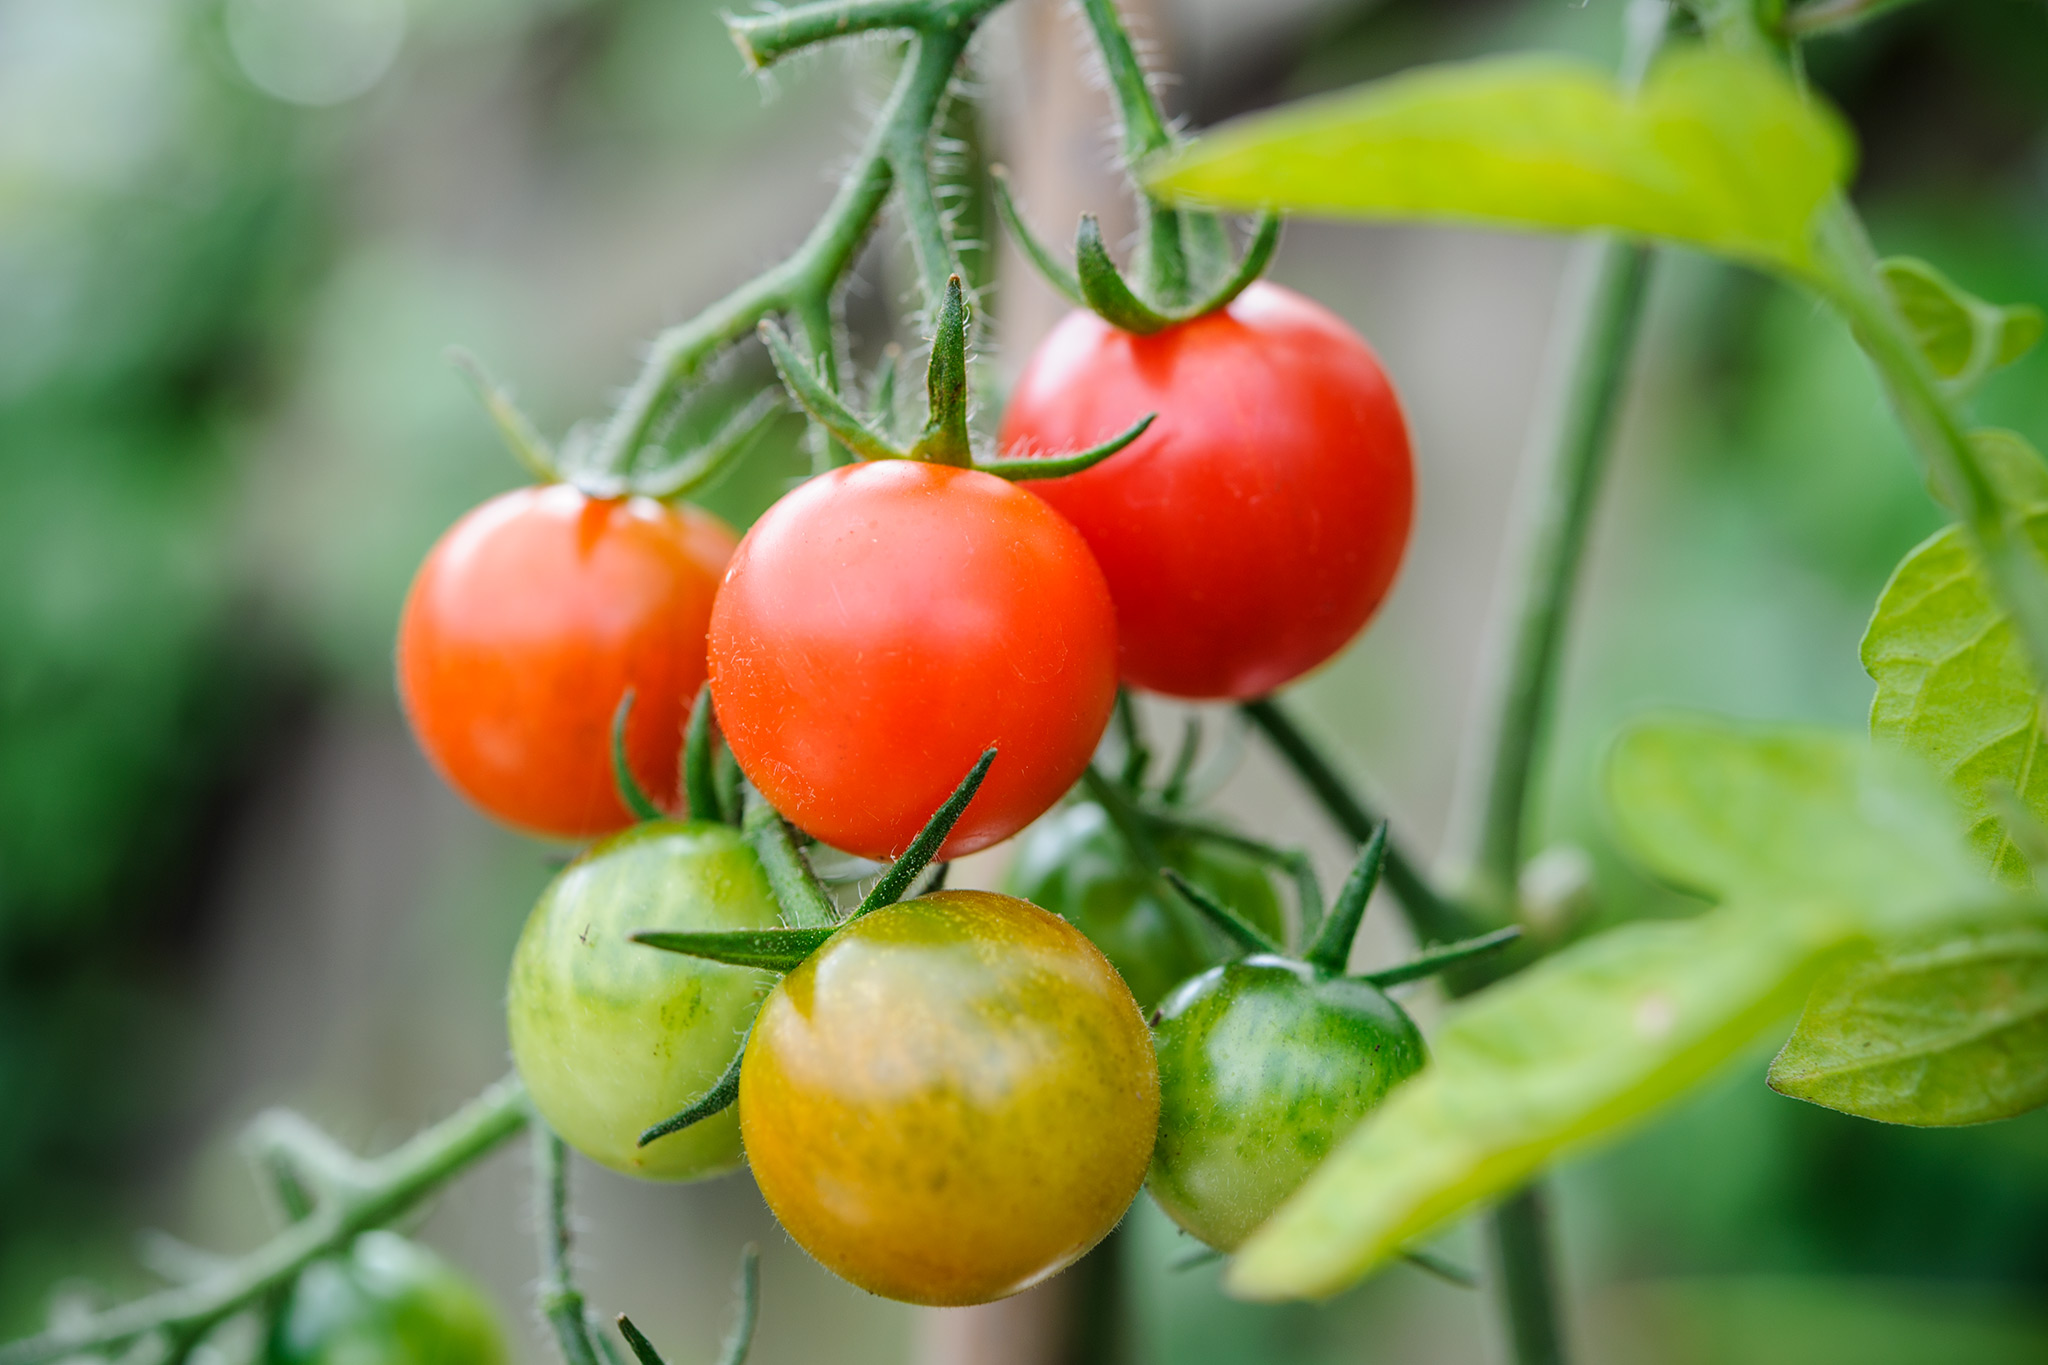 tomatoes-ripening-on-the-vine-2